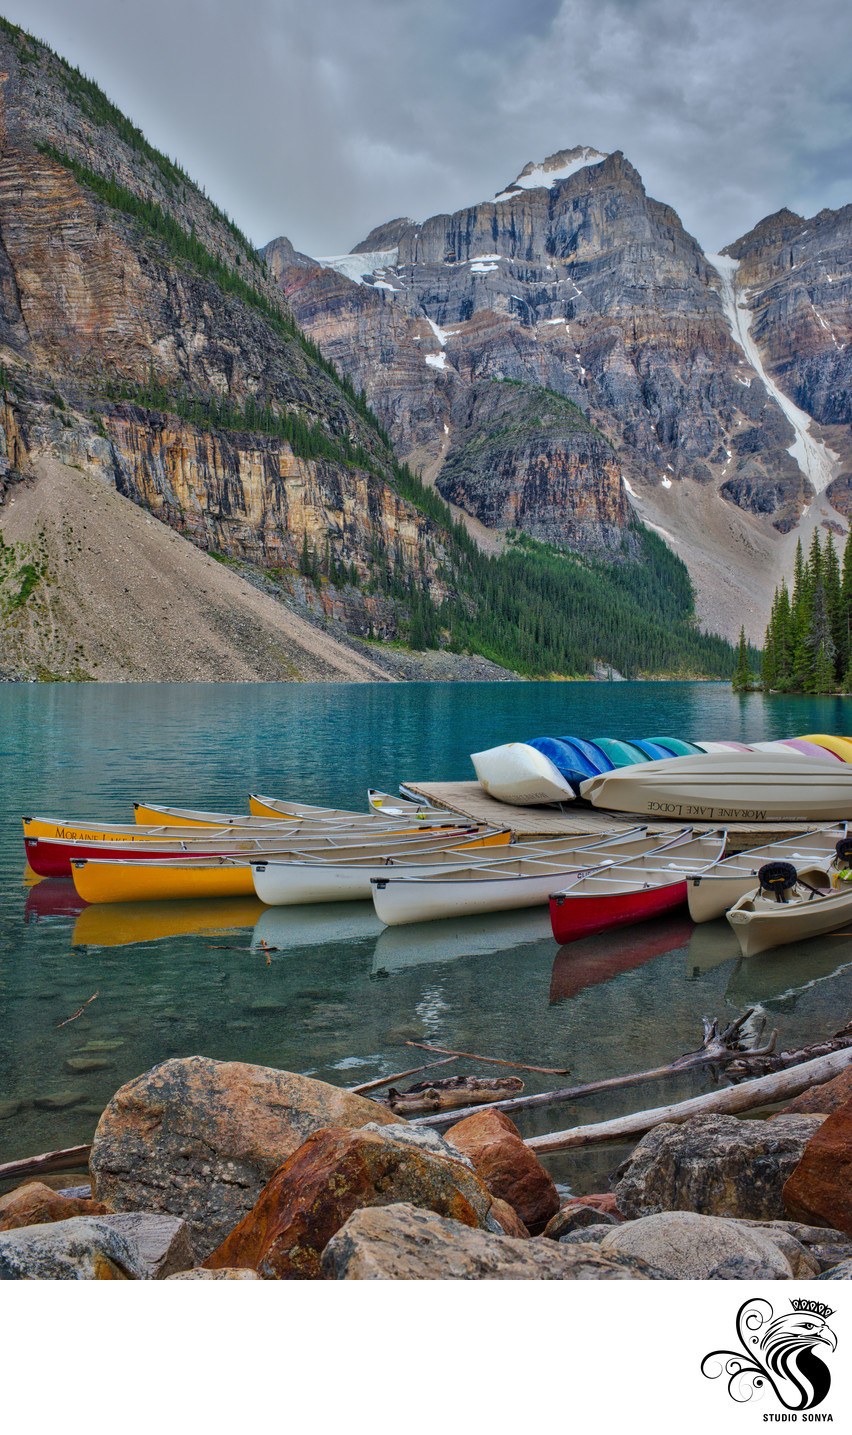 Canoes Resting on the Dock at Moraine Lake